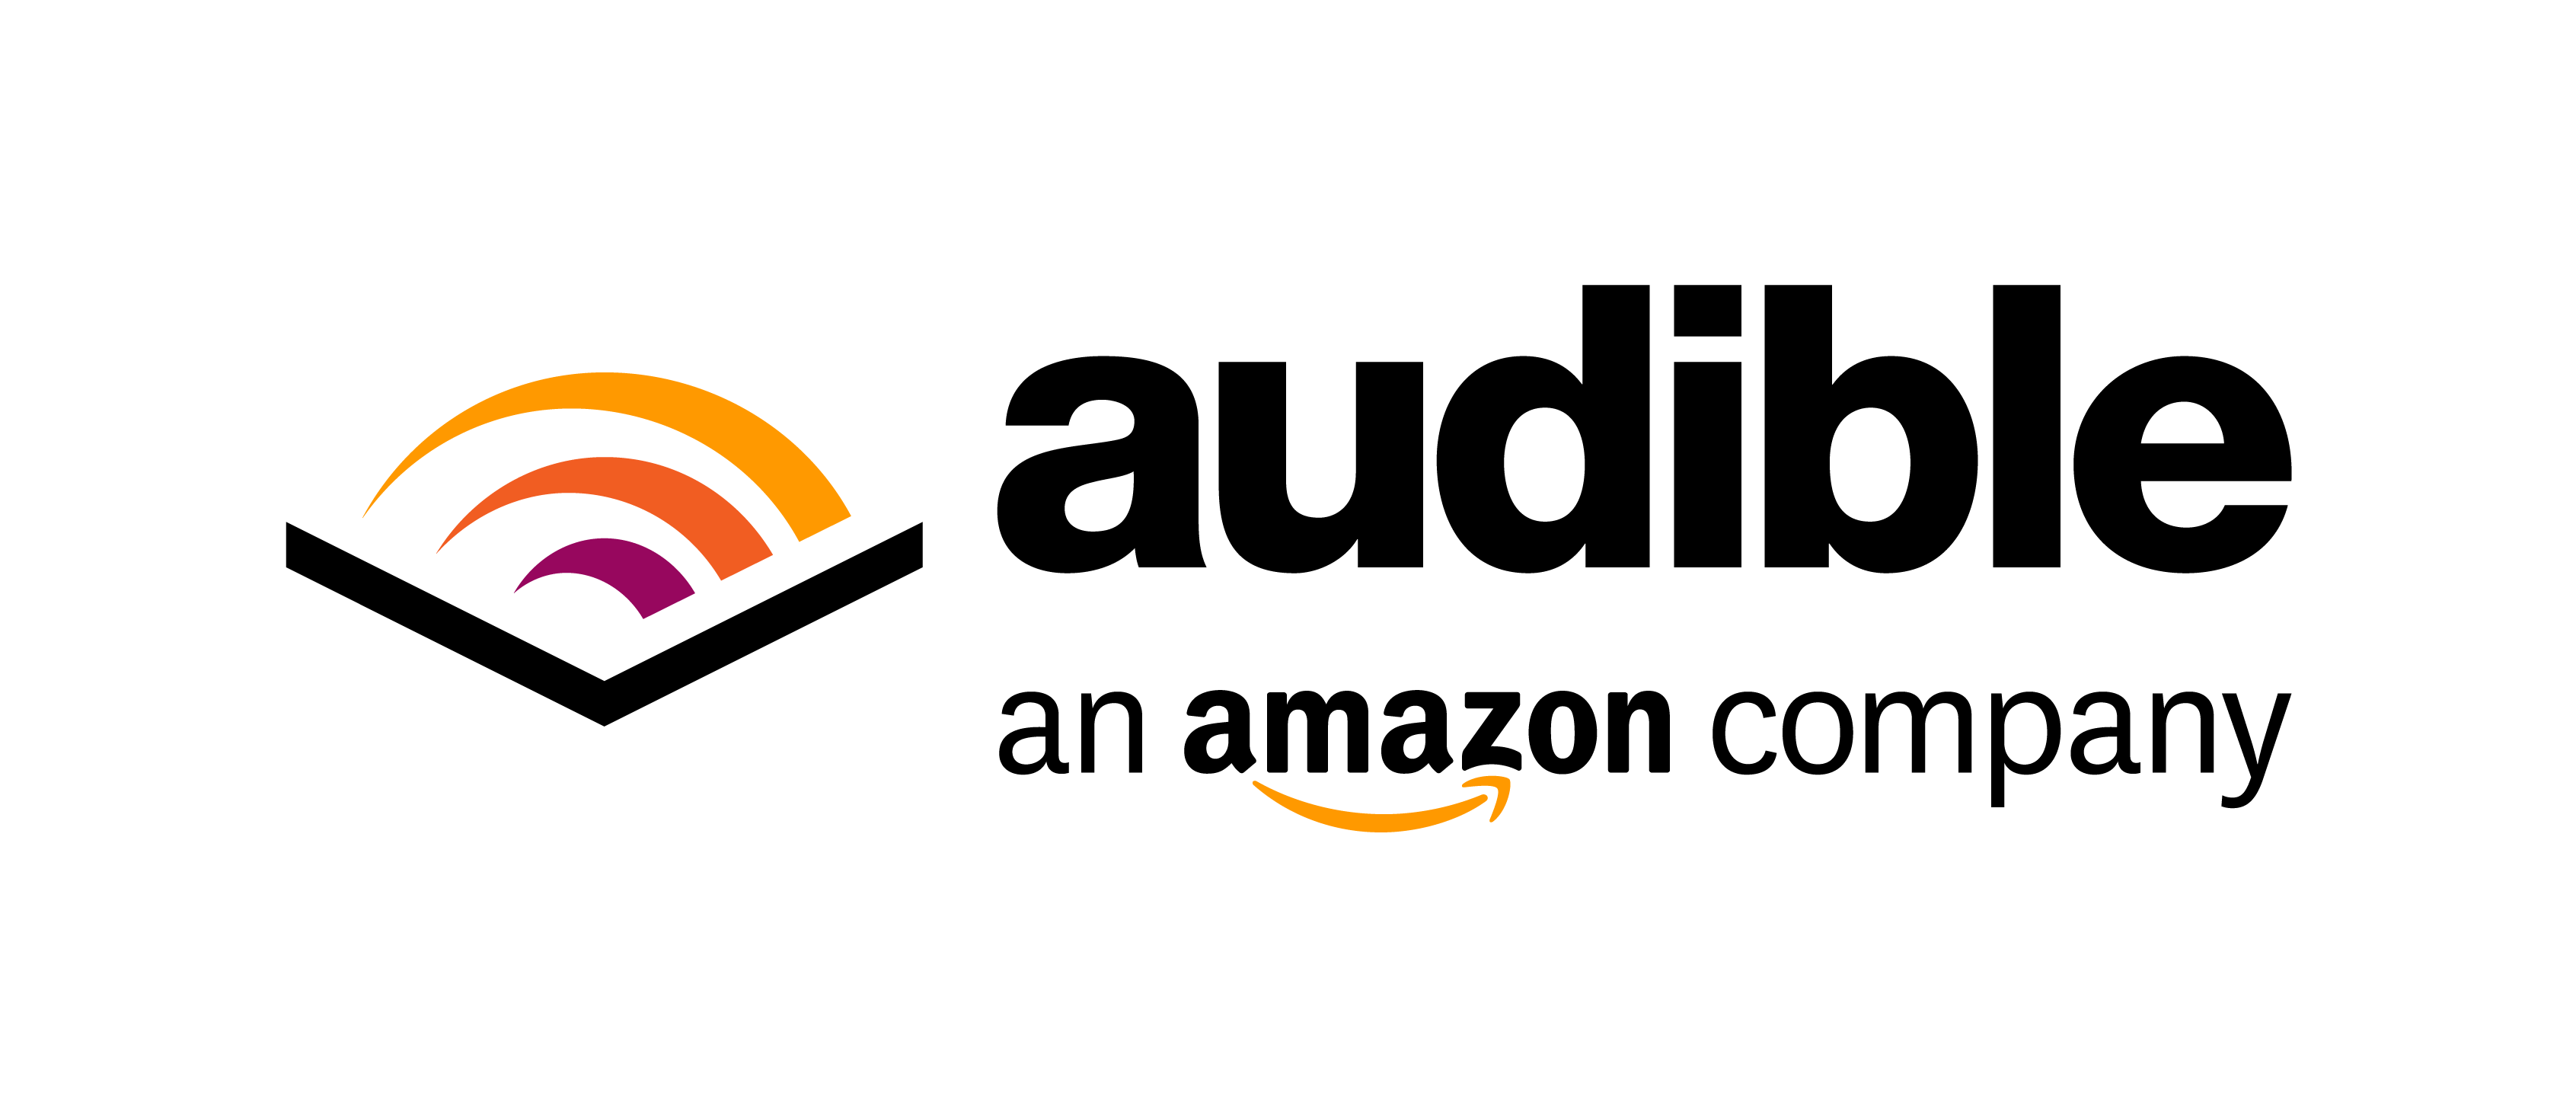 https://d3iqwsql9z4qvn.cloudfront.net/wp-content/uploads/2017/05/26170219/audible-logo-white.png